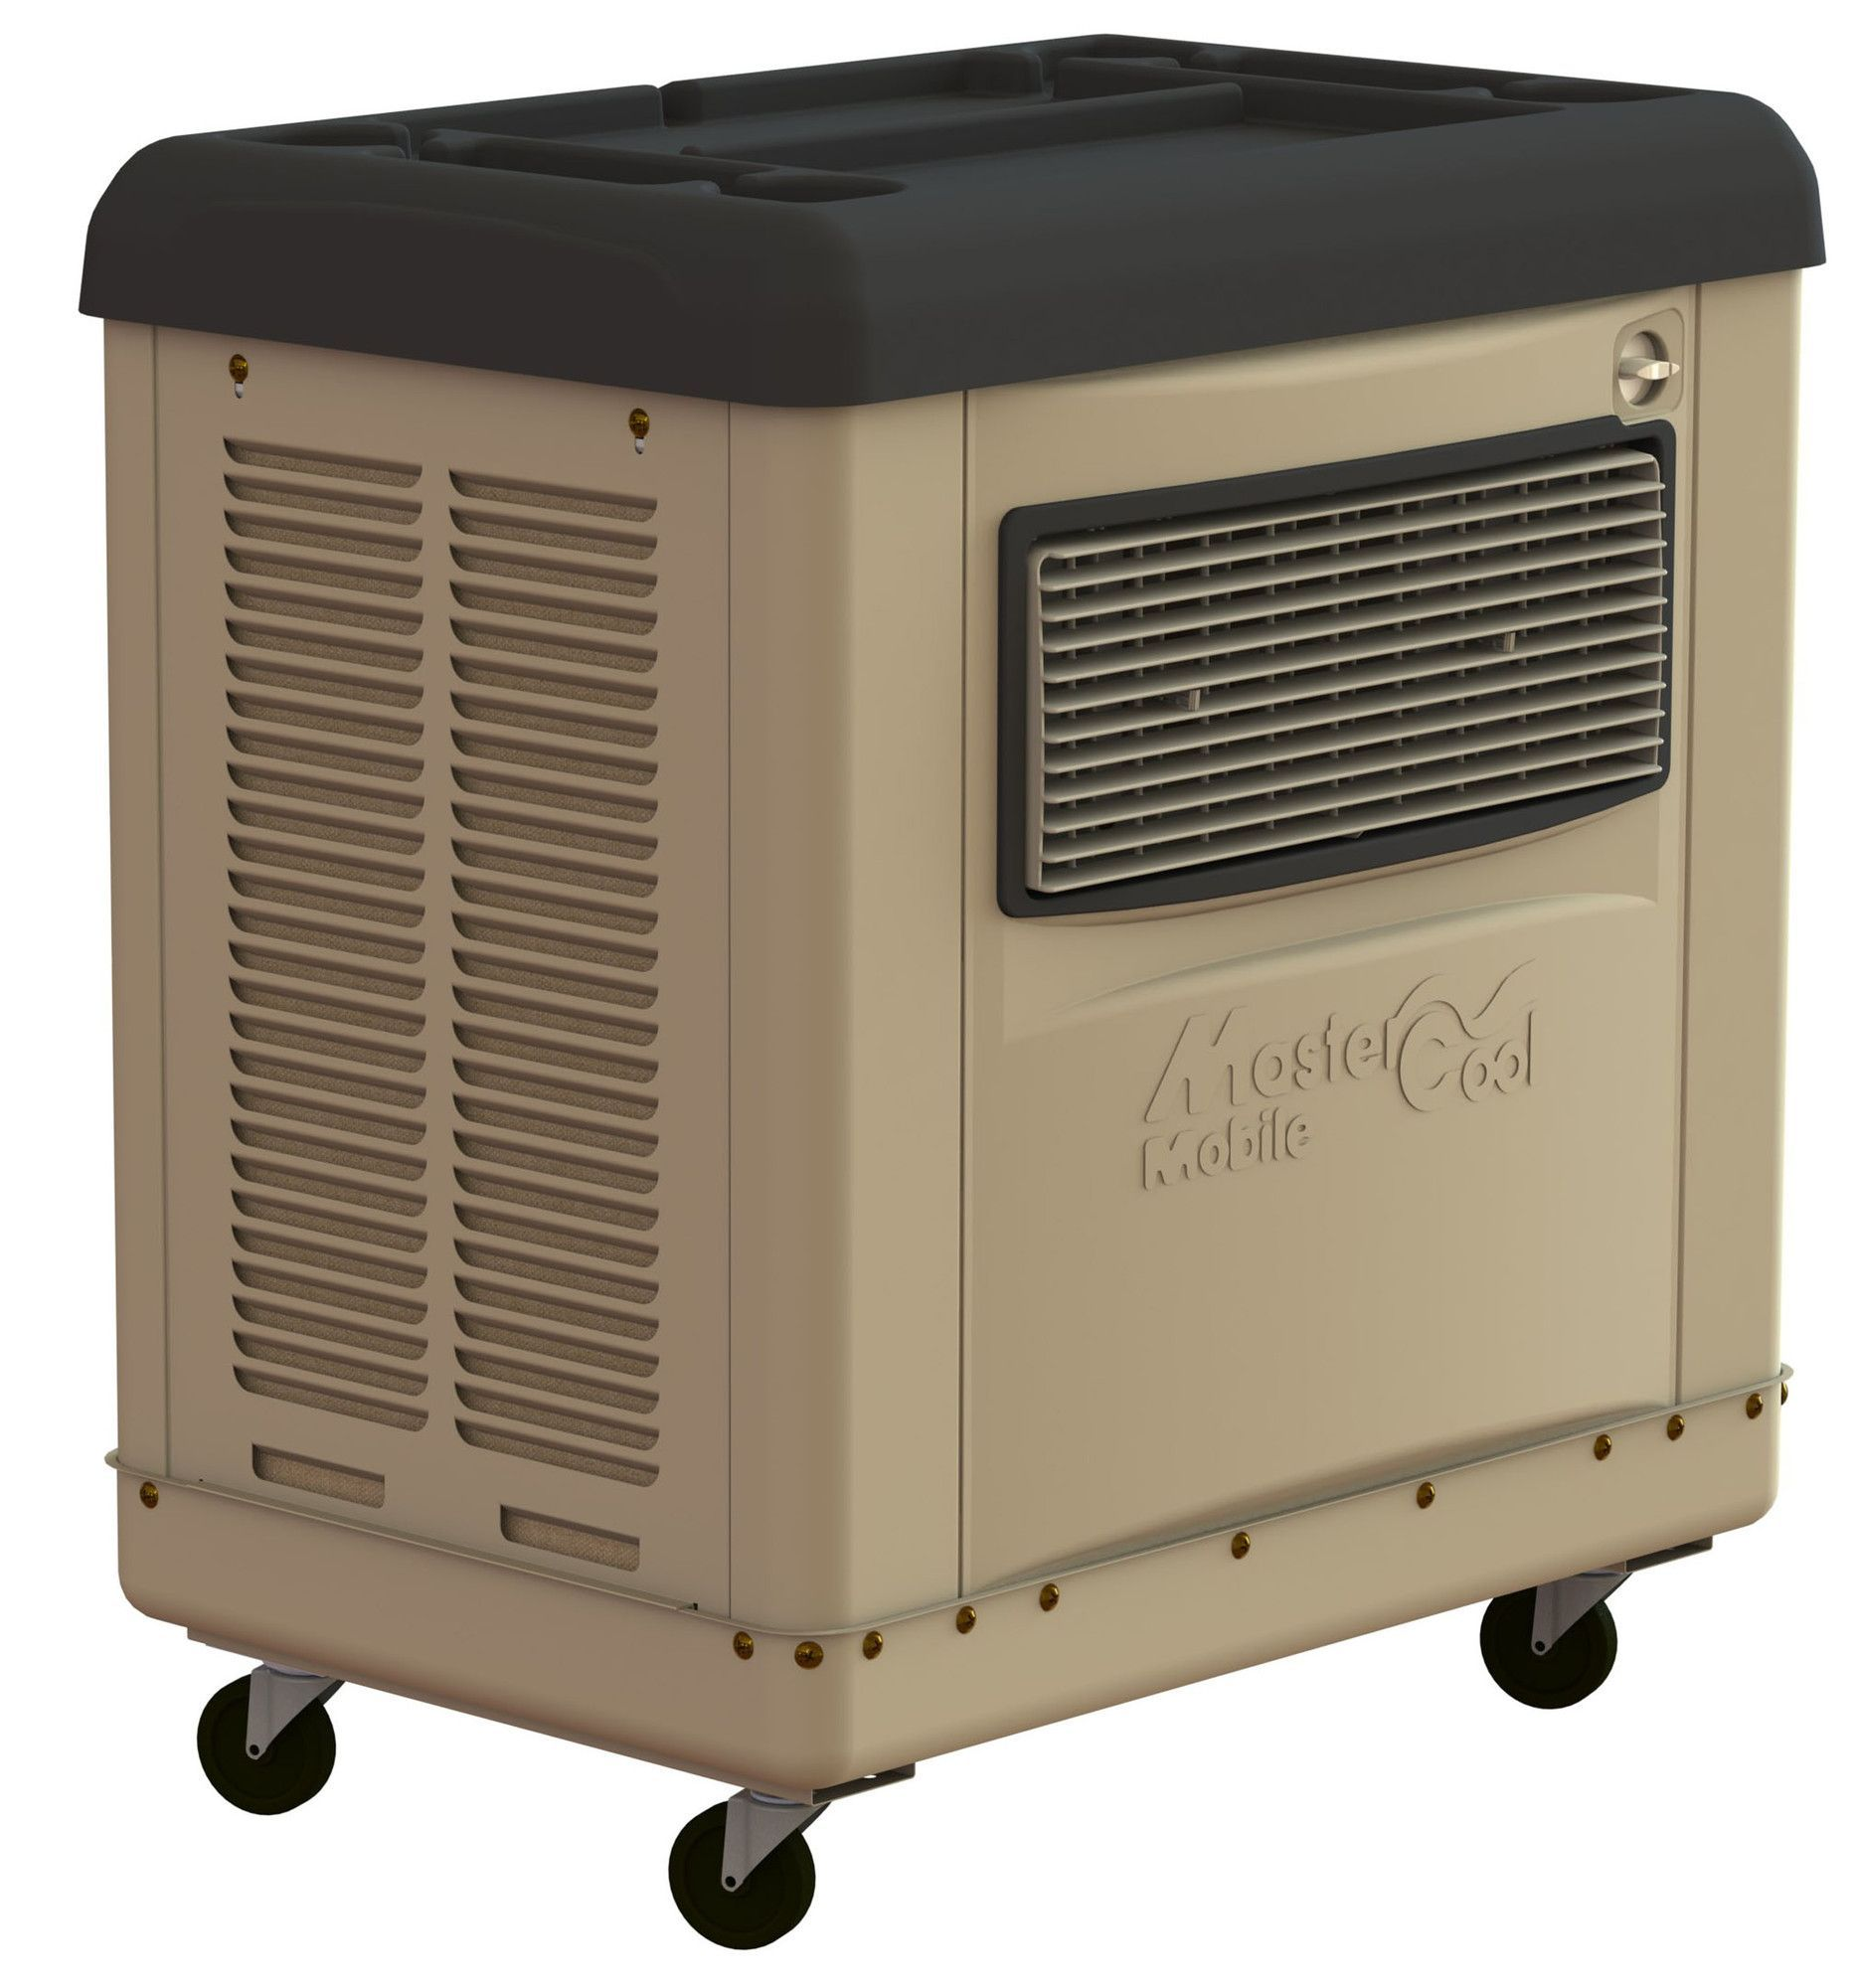 Mobile Evaporative Cooler (With images) Evaporative